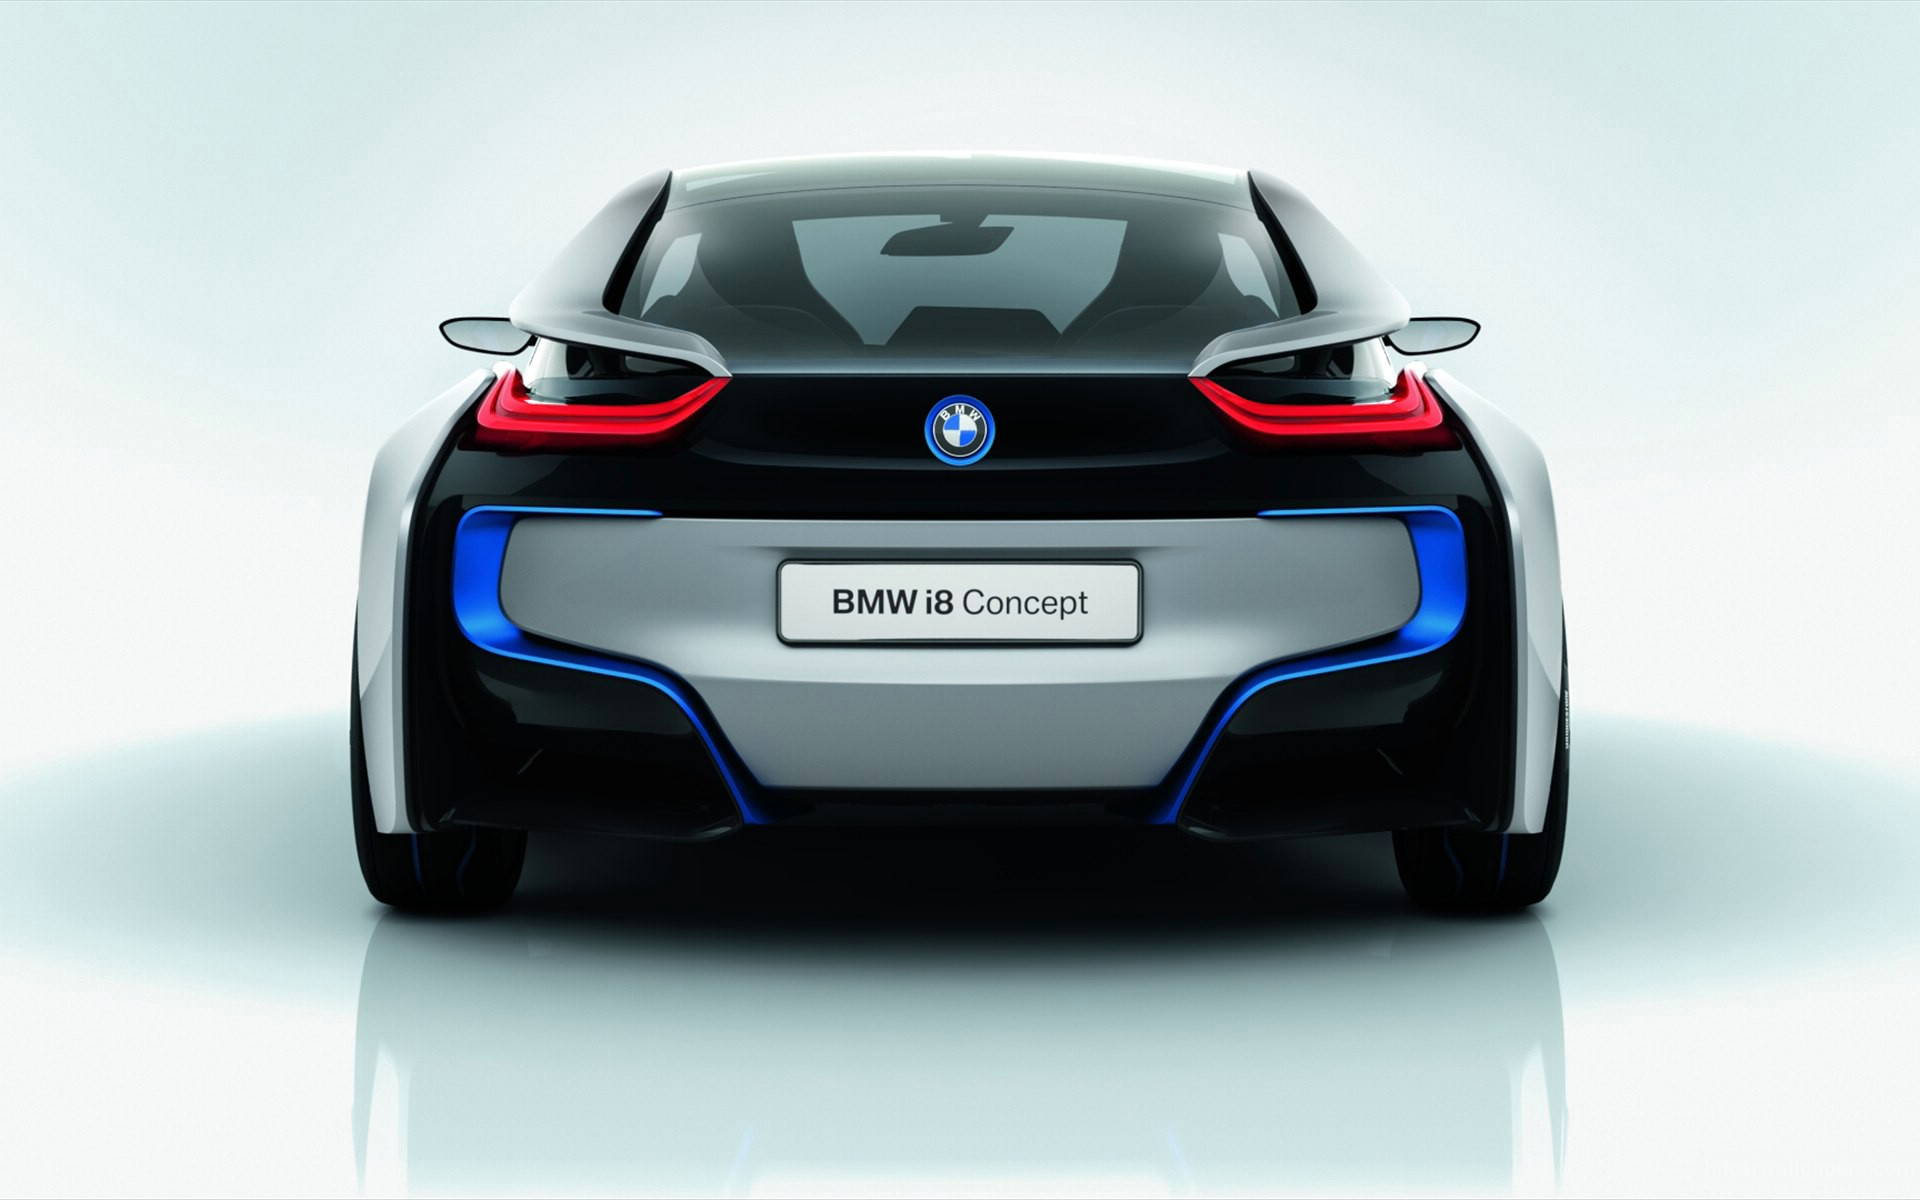 1920x1200 - BMW i3 Concept Wallpapers 3